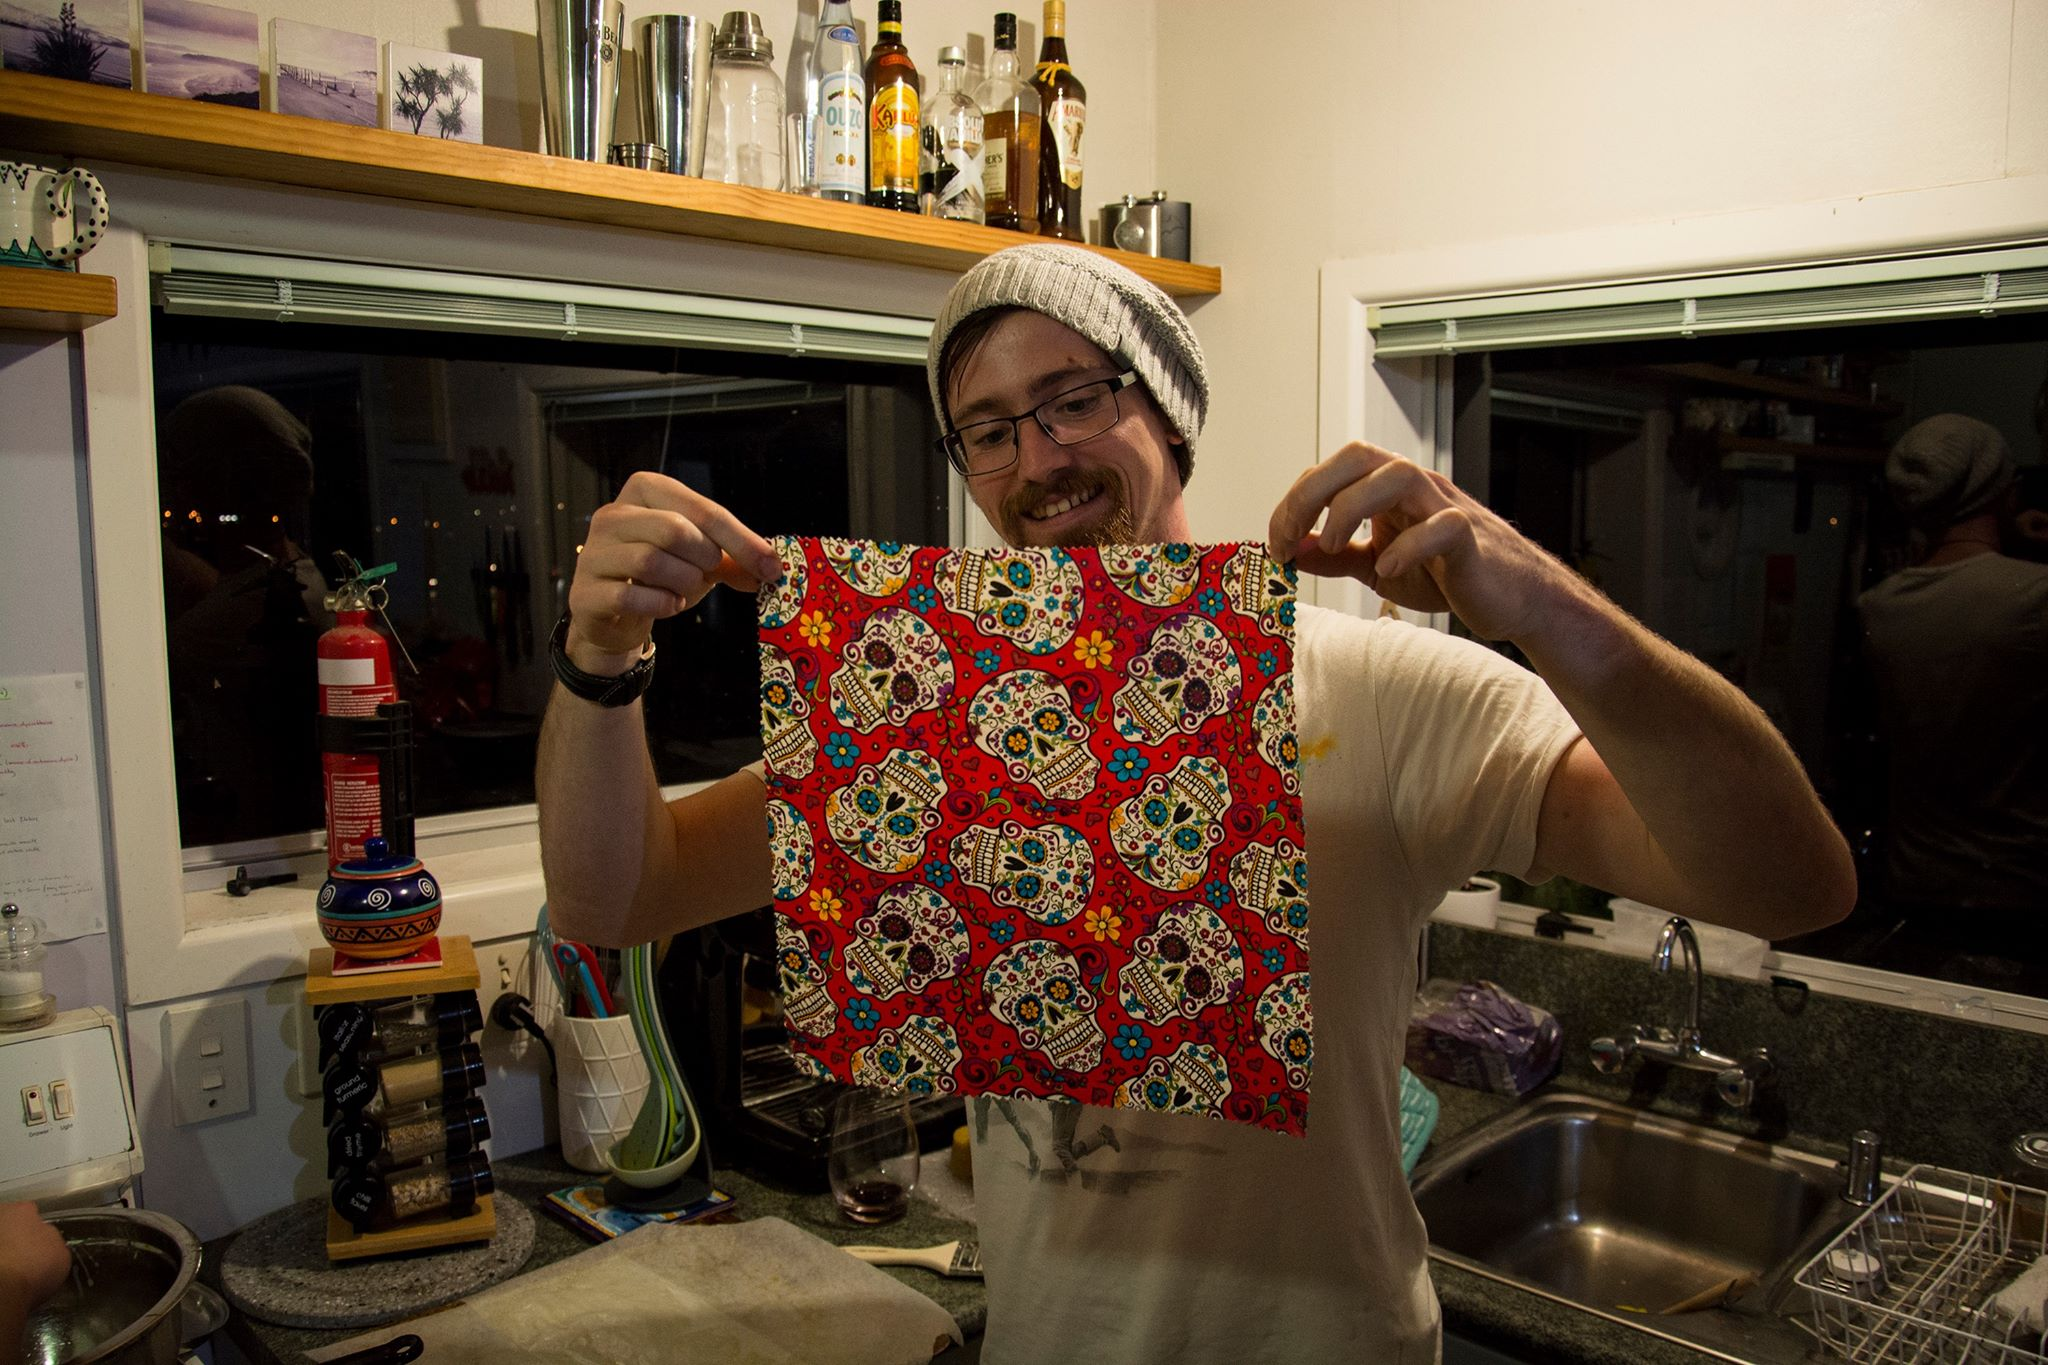 Look at how excited Jon is about his sugar skulls! Also, note the fire extinguisher to the left - in case you thought I was kidding!